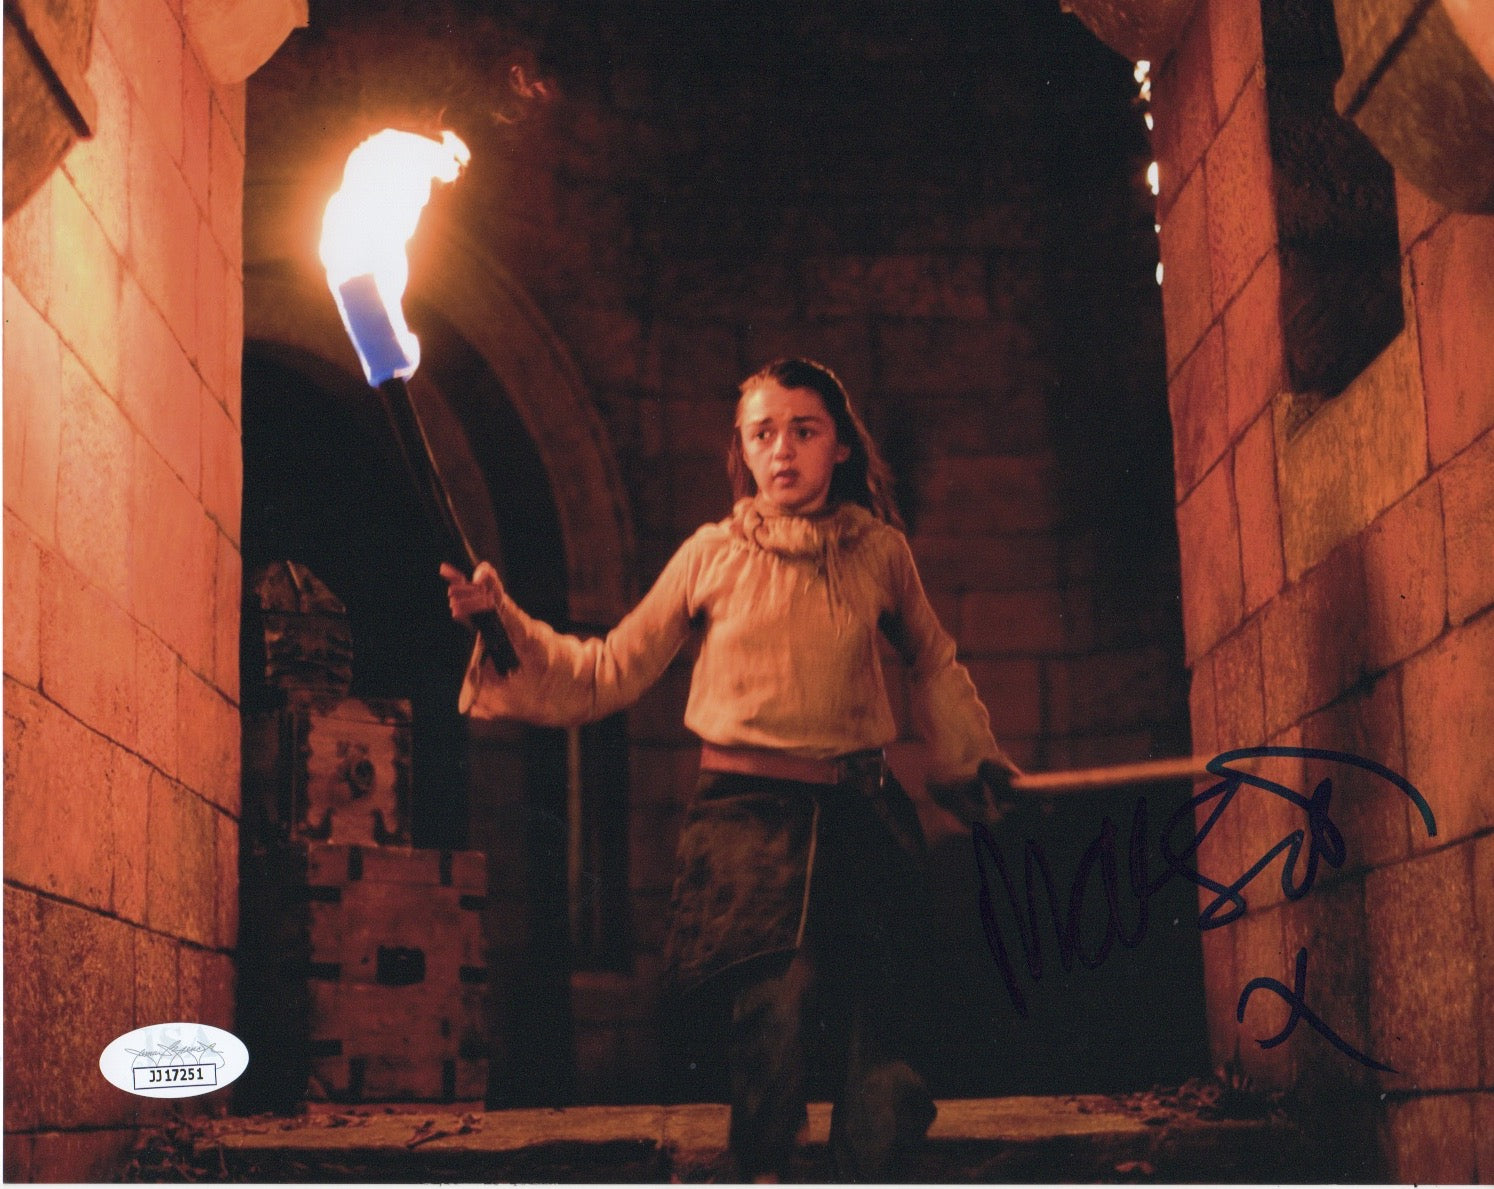 Maisie Williams Game of Thrones Signed Autograph 8x10 Photo JSA Arya Authentic #5 - Outlaw Hobbies Authentic Autographs